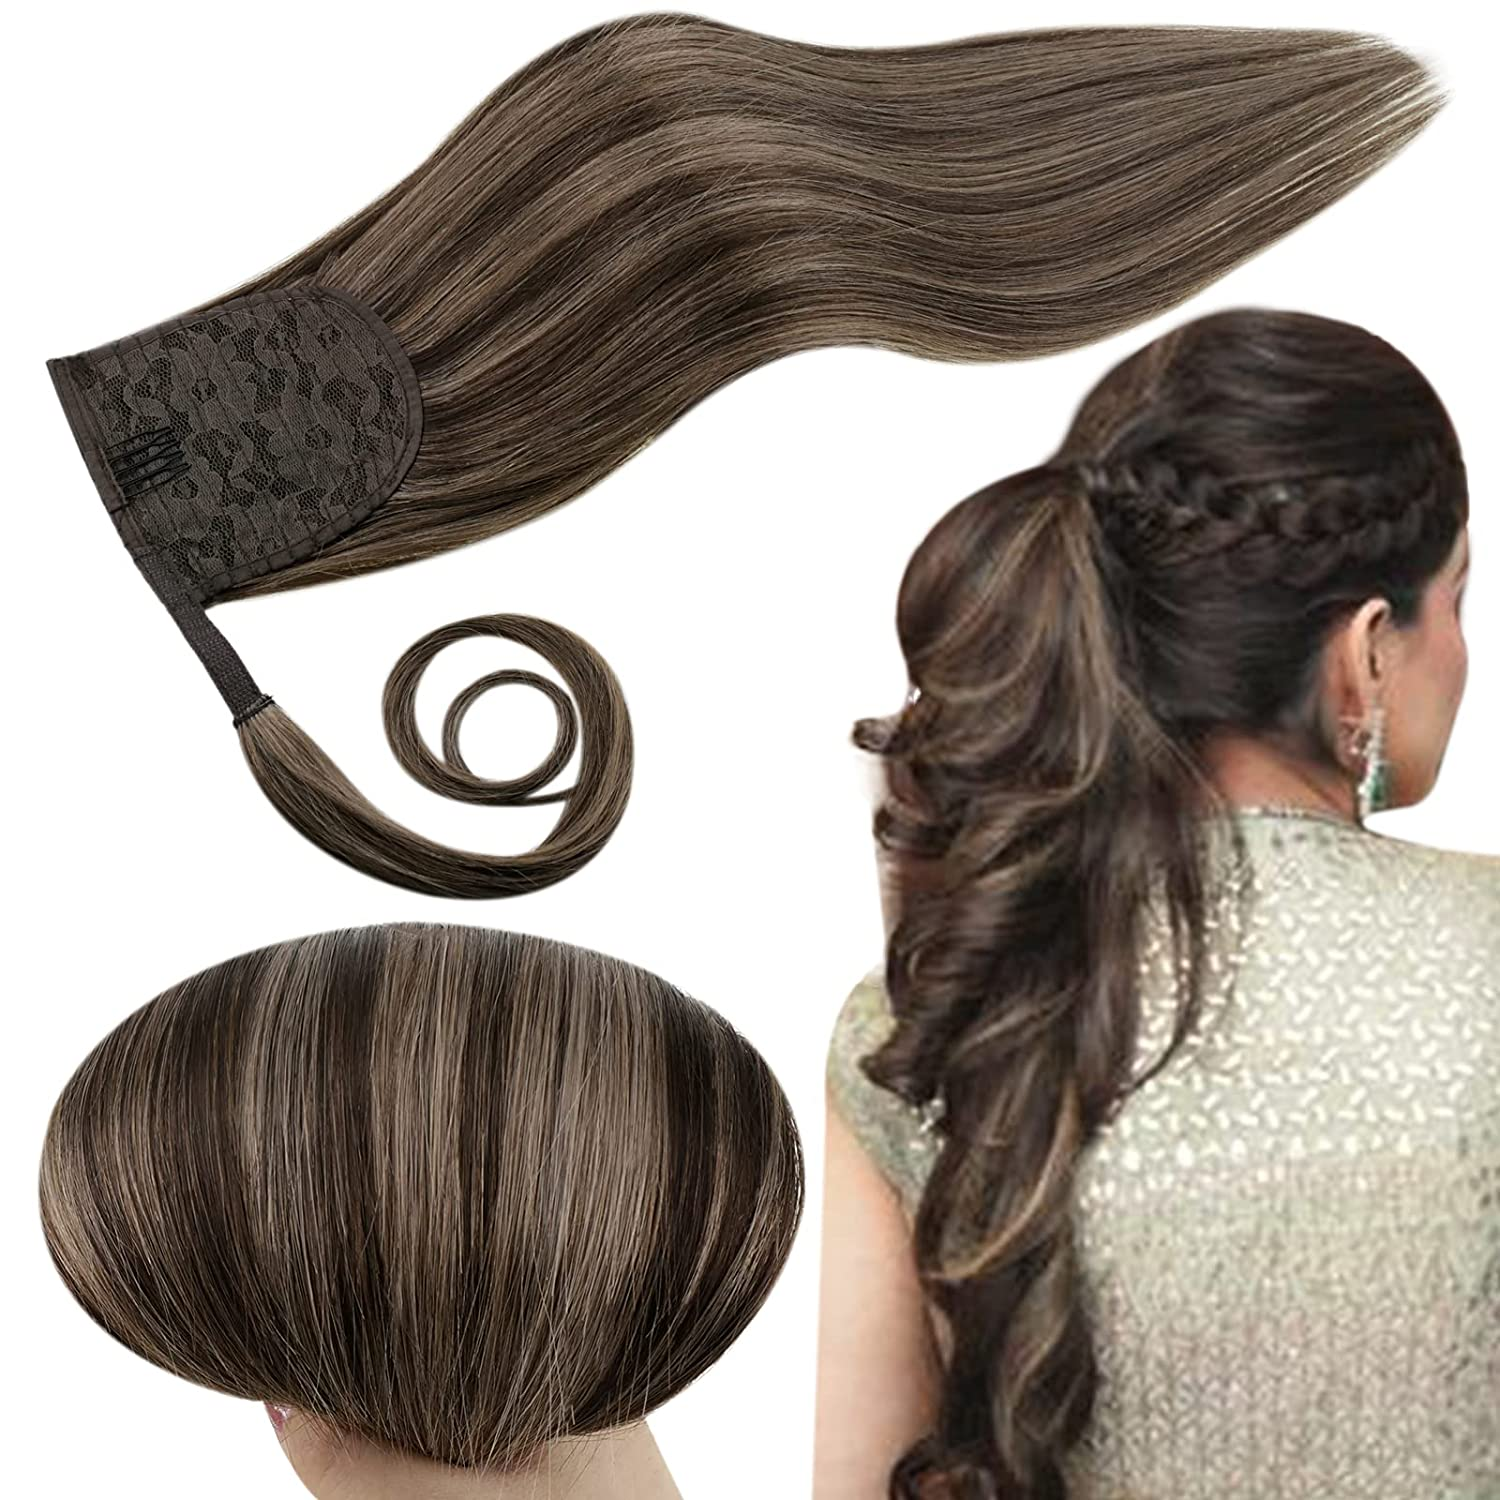 RUNATURE Max 49% OFF Hair Extensions Ponytail Highlights Darkest Cheap mail order specialty store Brown 2P8A